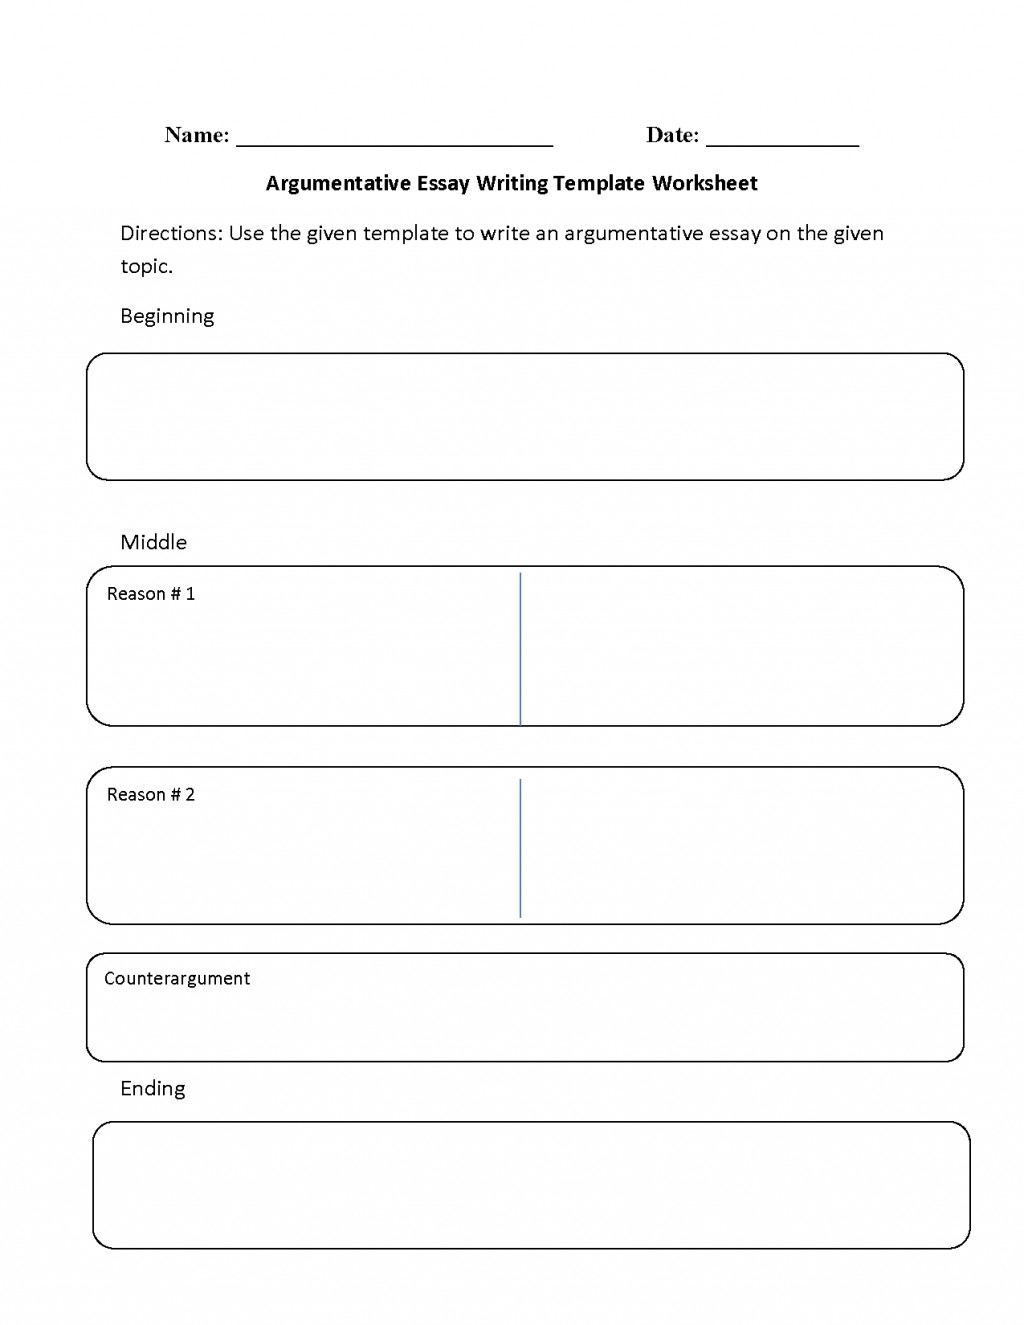 004 Write An Argumentative Essay Example Surprising Sample In Which You State And Defend Large